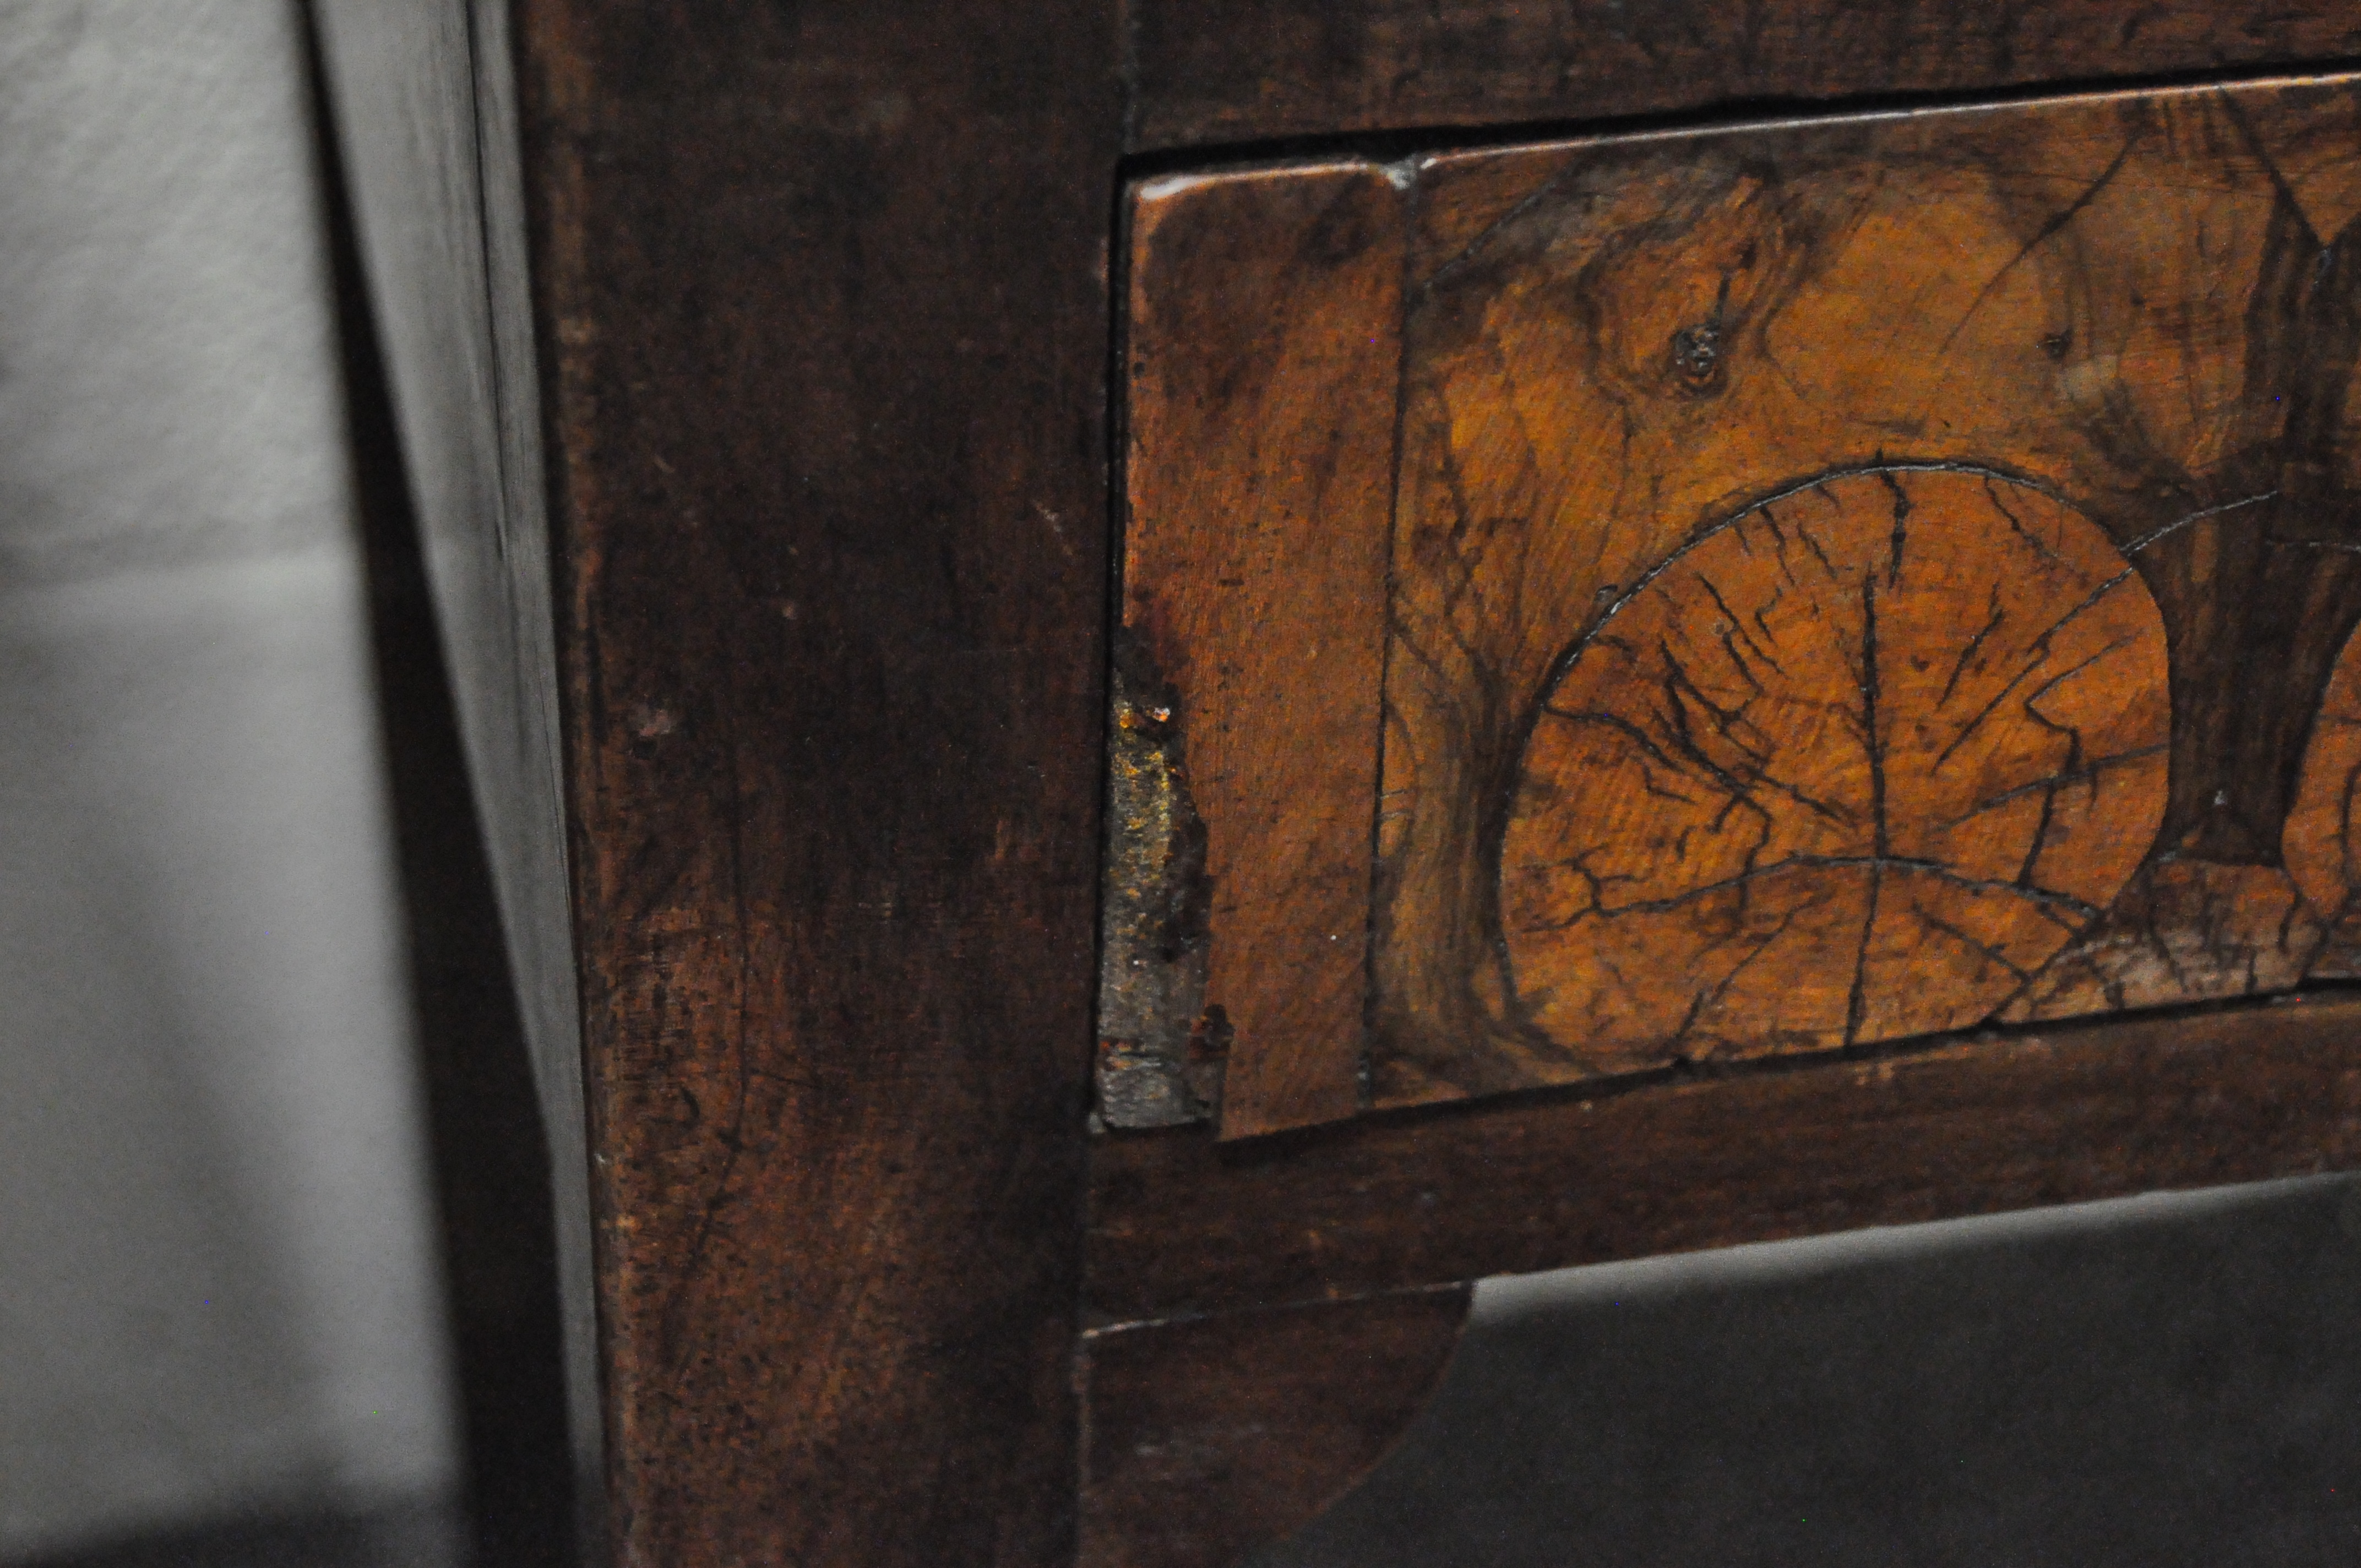 An oyster veneered cabinet on stand, 17th century style but later in date, - Image 4 of 18